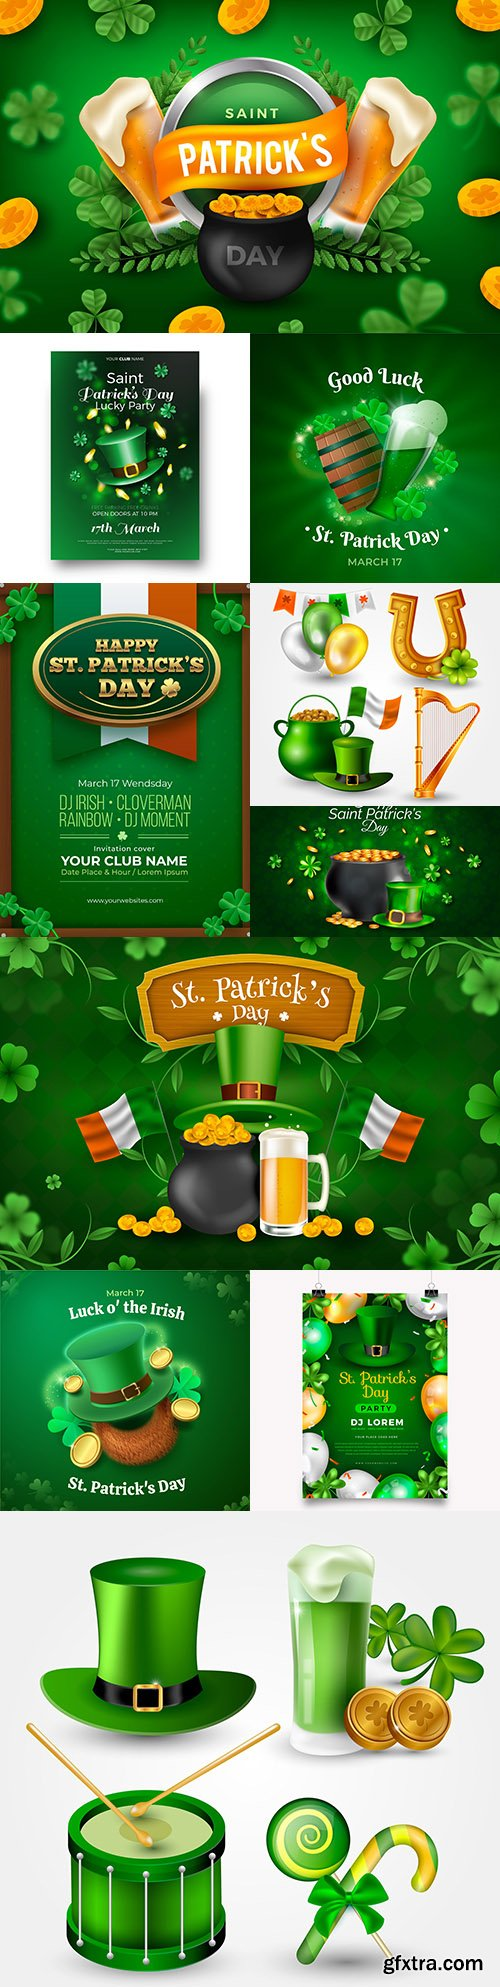 Realistic st. Patrick's day illustration with boiler and pints